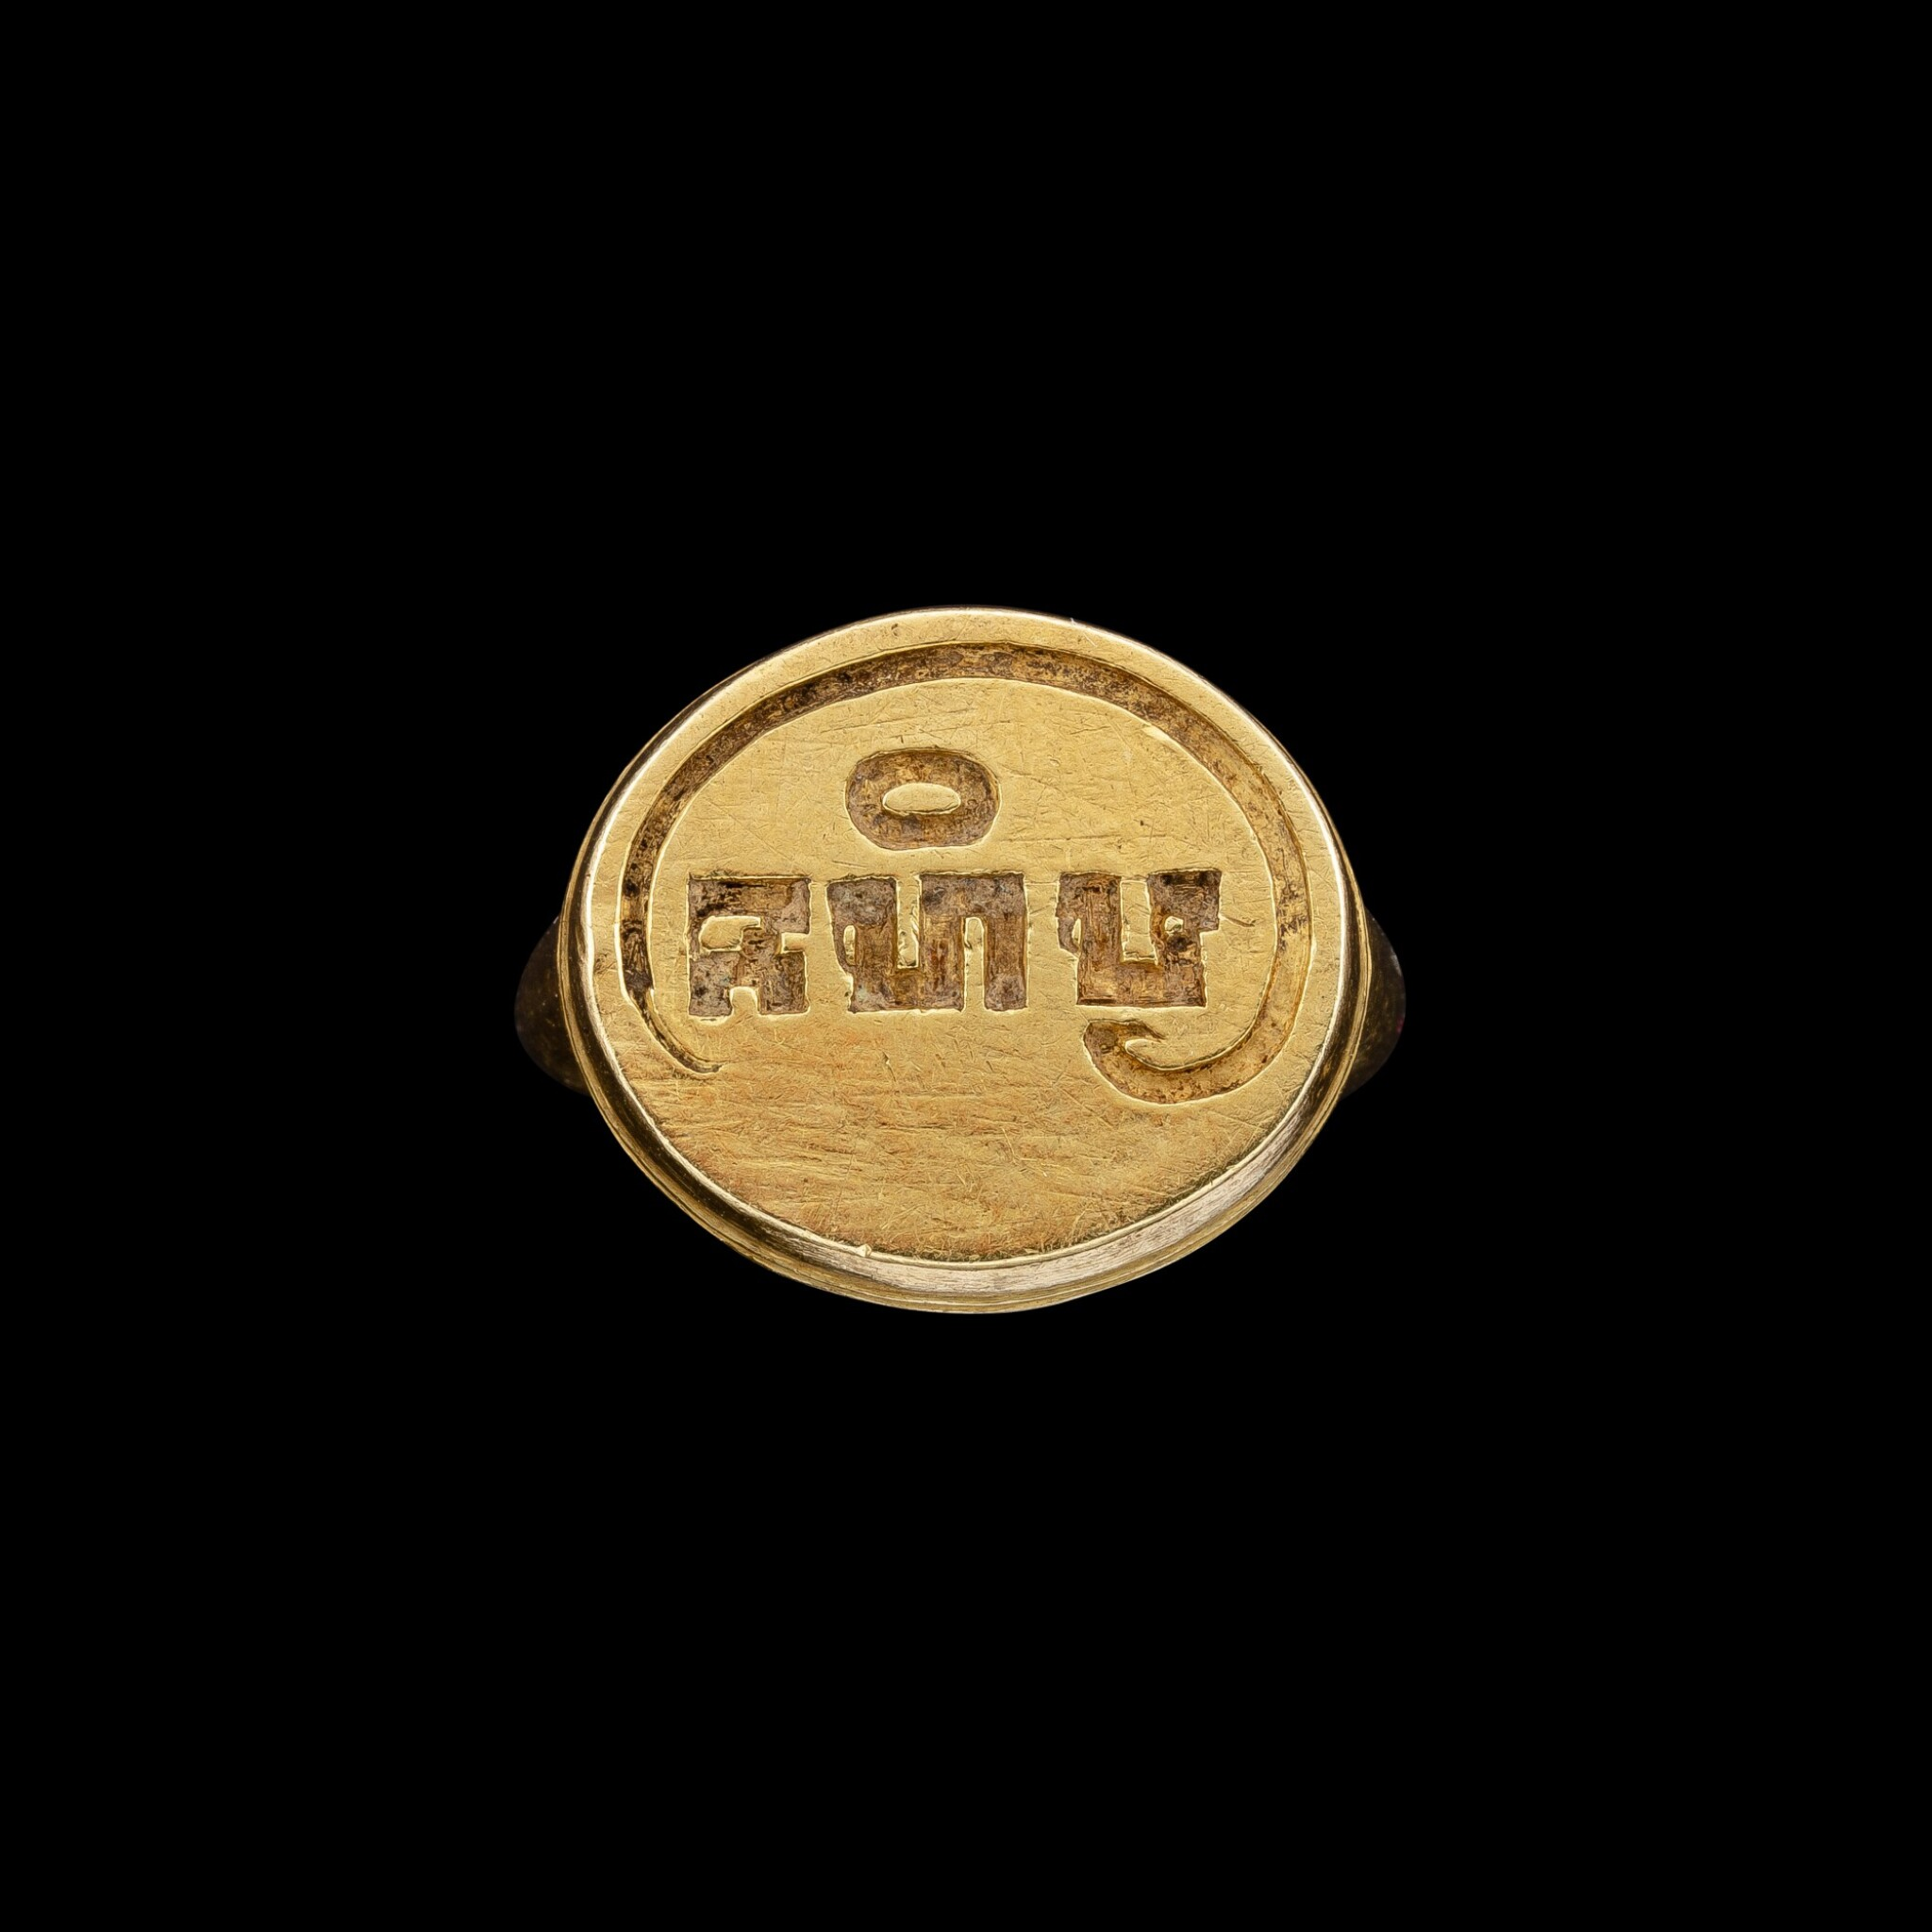 View full screen - View 1 of Lot 1007. A gold seal ring with 'Sri' inscription From Rabuk, Purbalingga, Central Java, Indonesia, 8th - 10th century | 八至十世紀 印尼中爪哇 「Sri」印章金戒指.